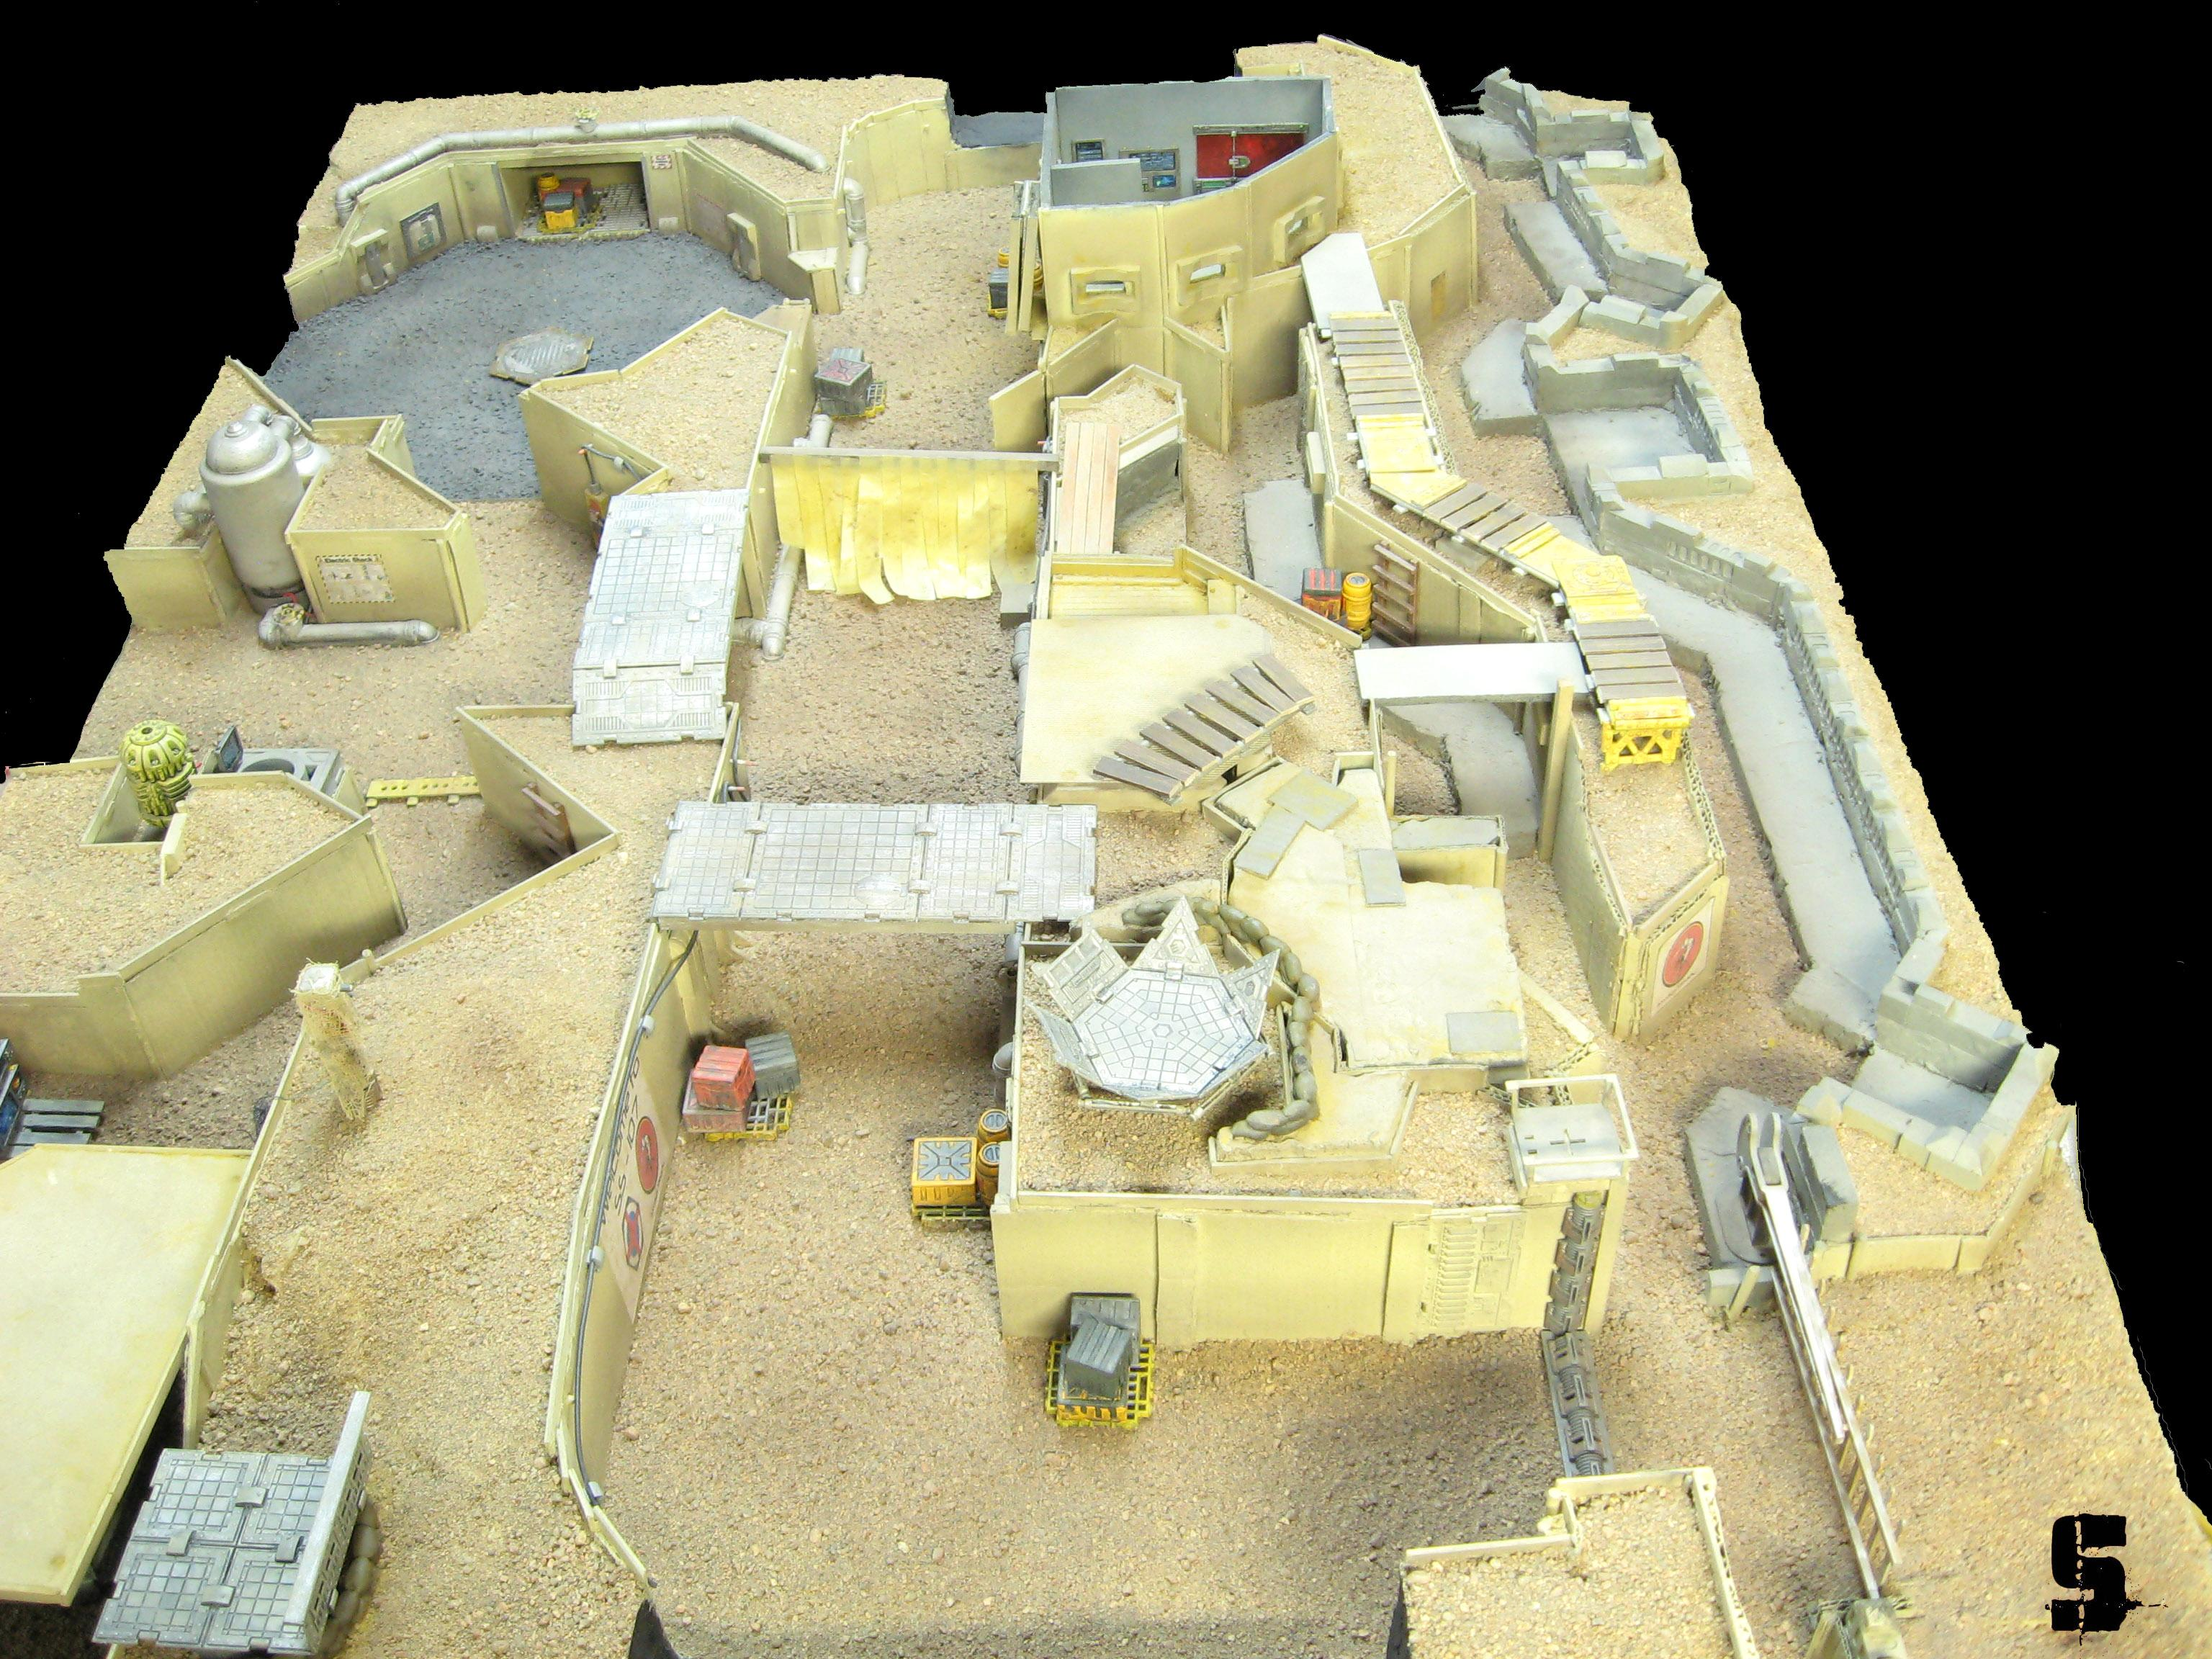 28mm, Commission, Desert, Infinity, Saw, Terrain, Trench, Warhammer 40,000